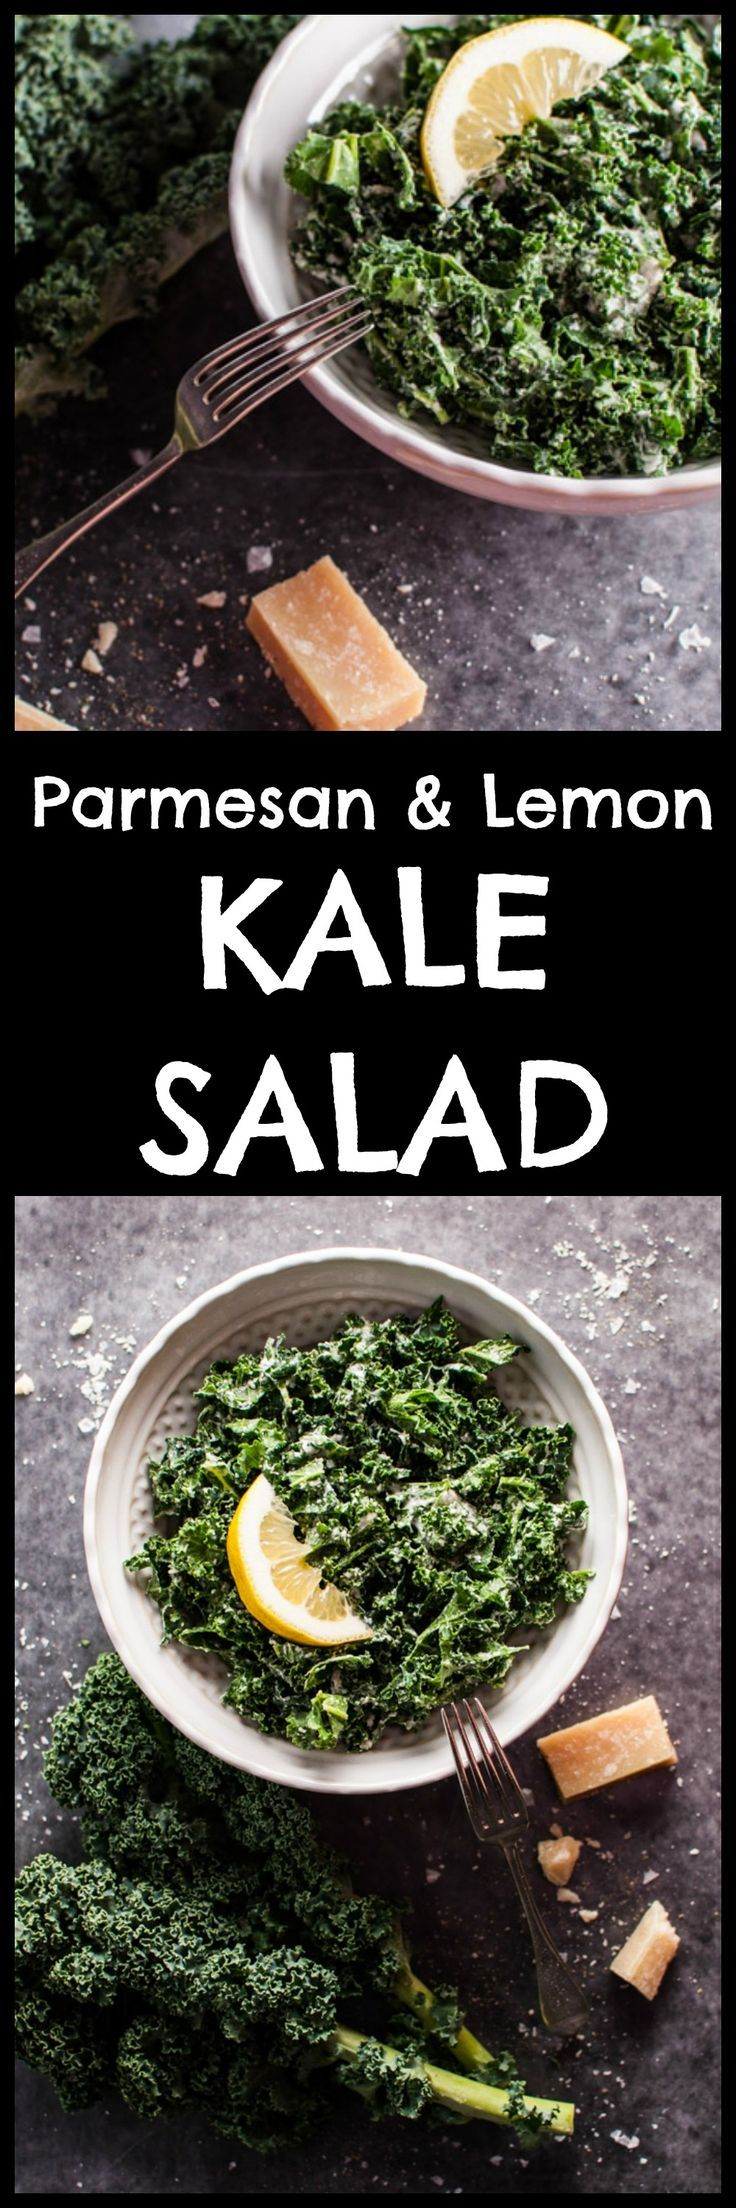 Kale salad with parmesan, lemon, and black truffle oil – you can easily add a gourmet twist to this superfood!